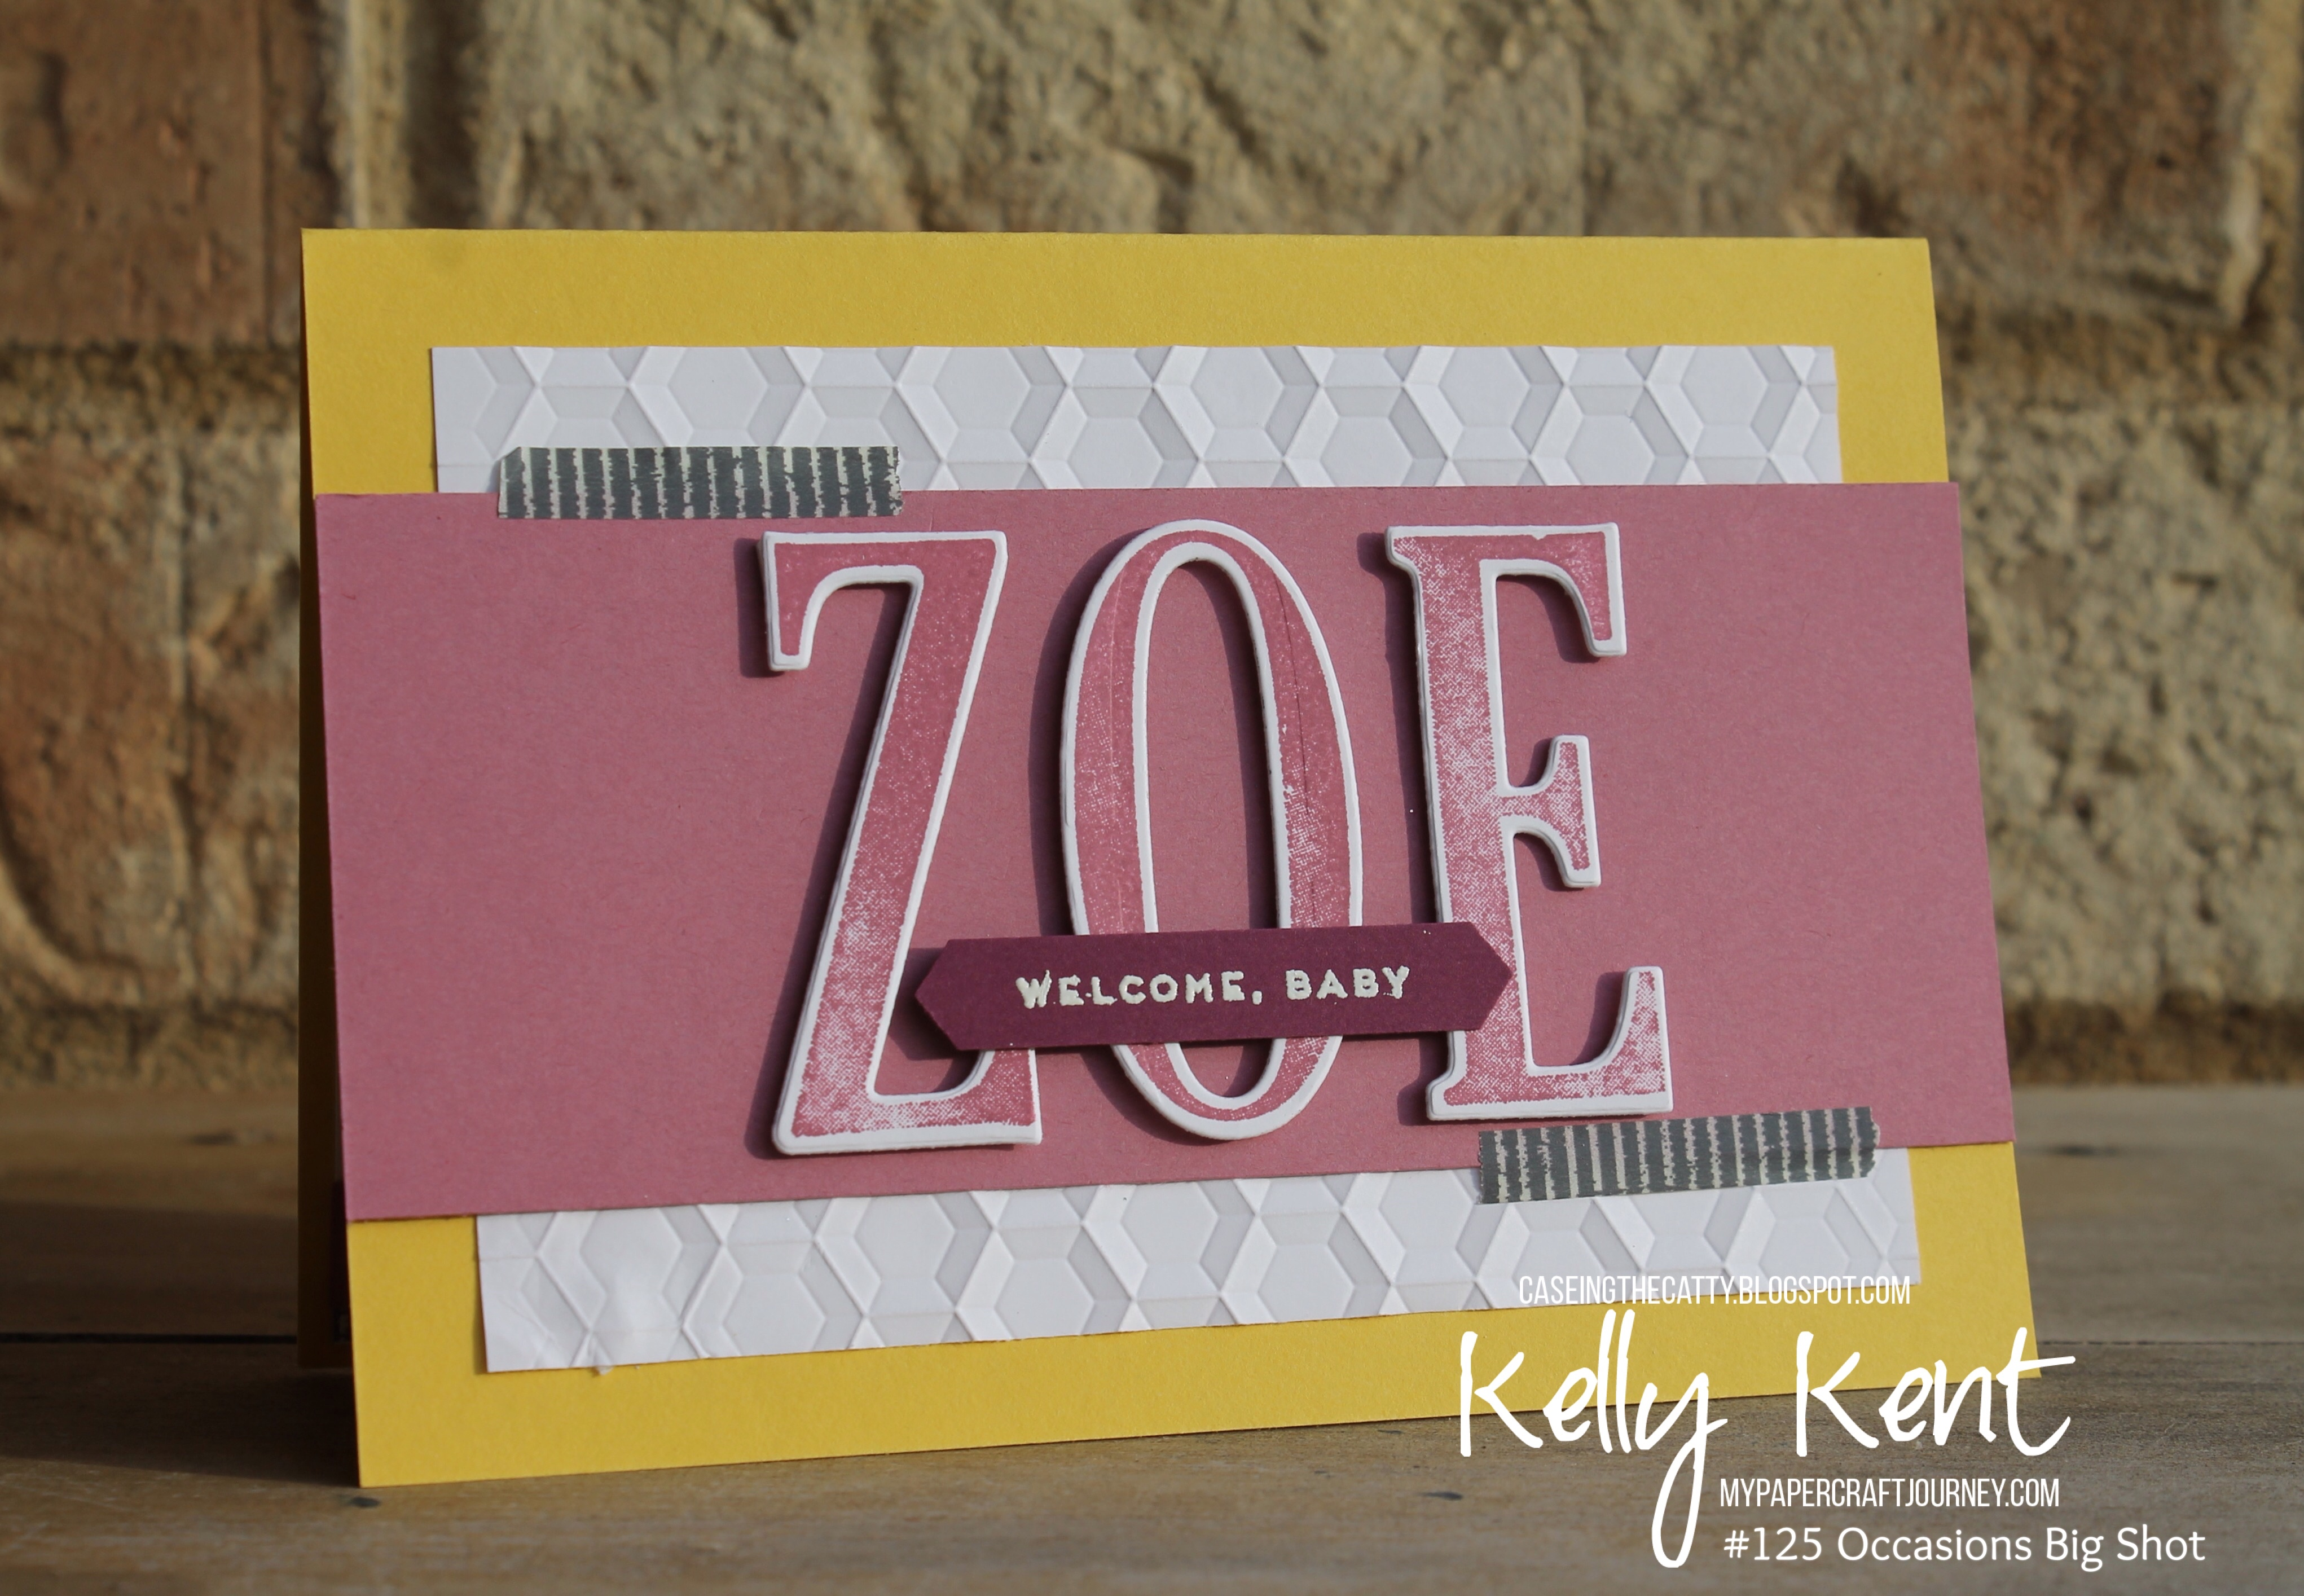 CASEing the Catty #125 Occasions Big Shot Projects | Kelly Kent mypapercraftjourney.com